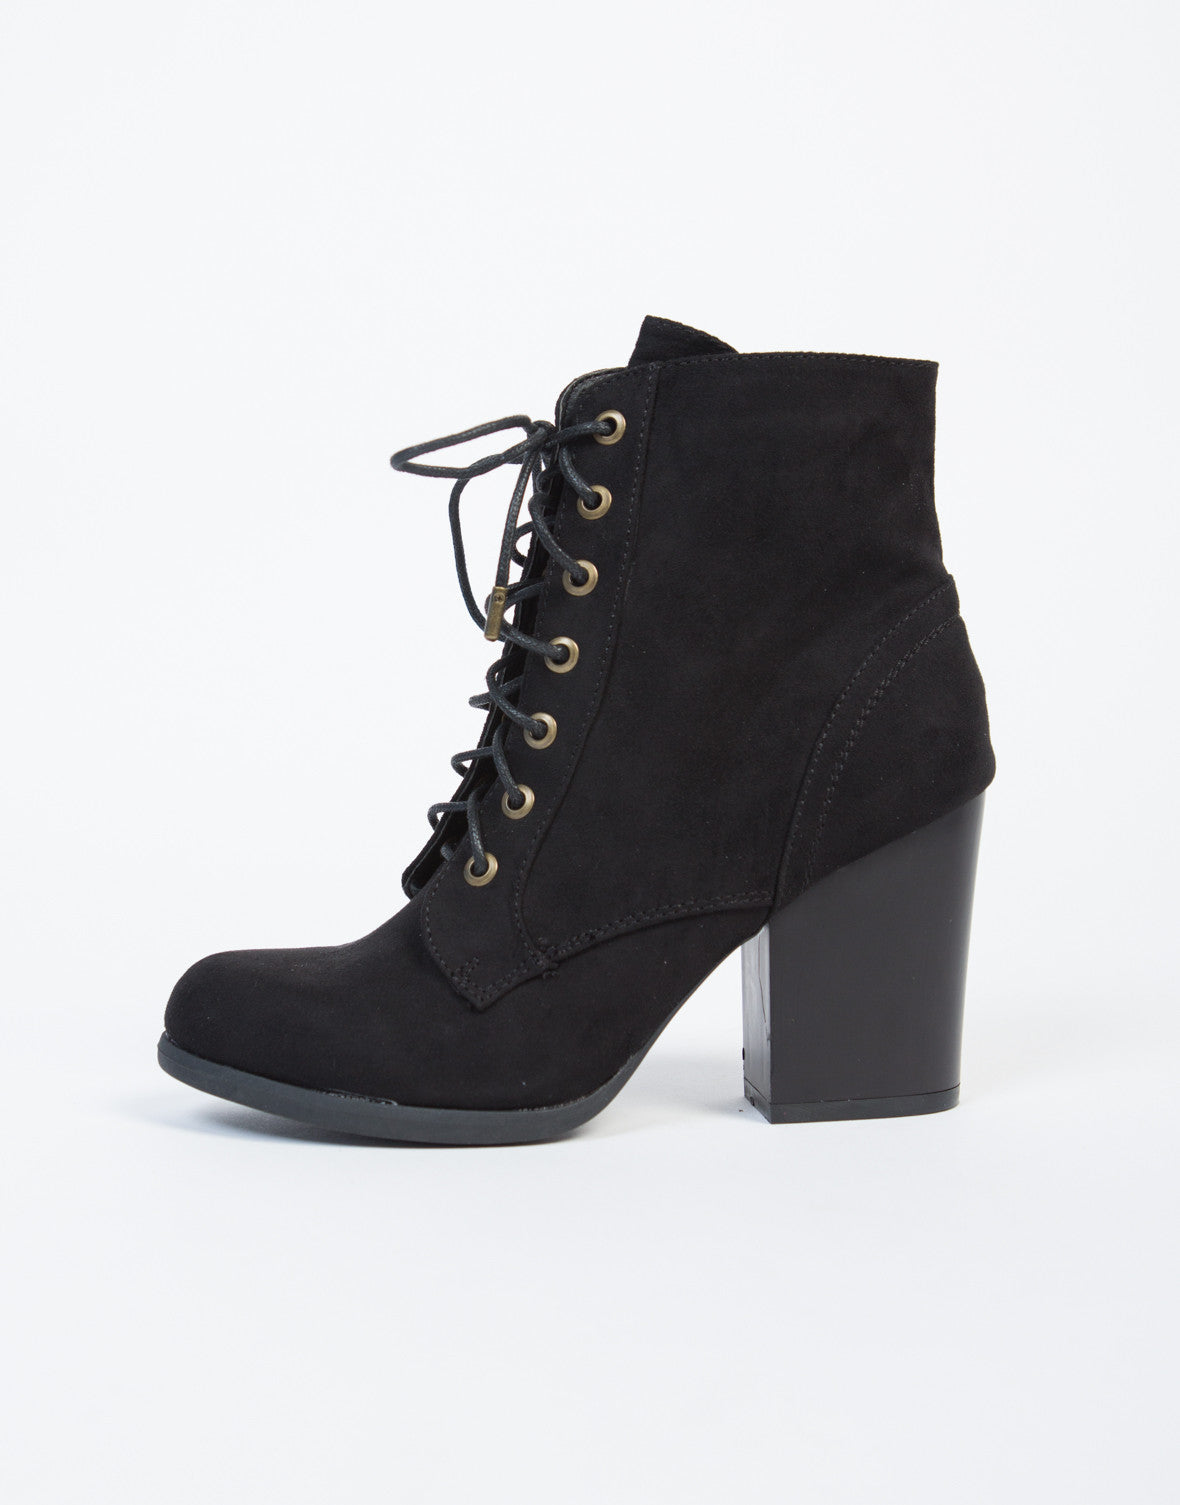 Lace-Up Wooden Heel Ankle Boots - Brown Leather Boots - Black